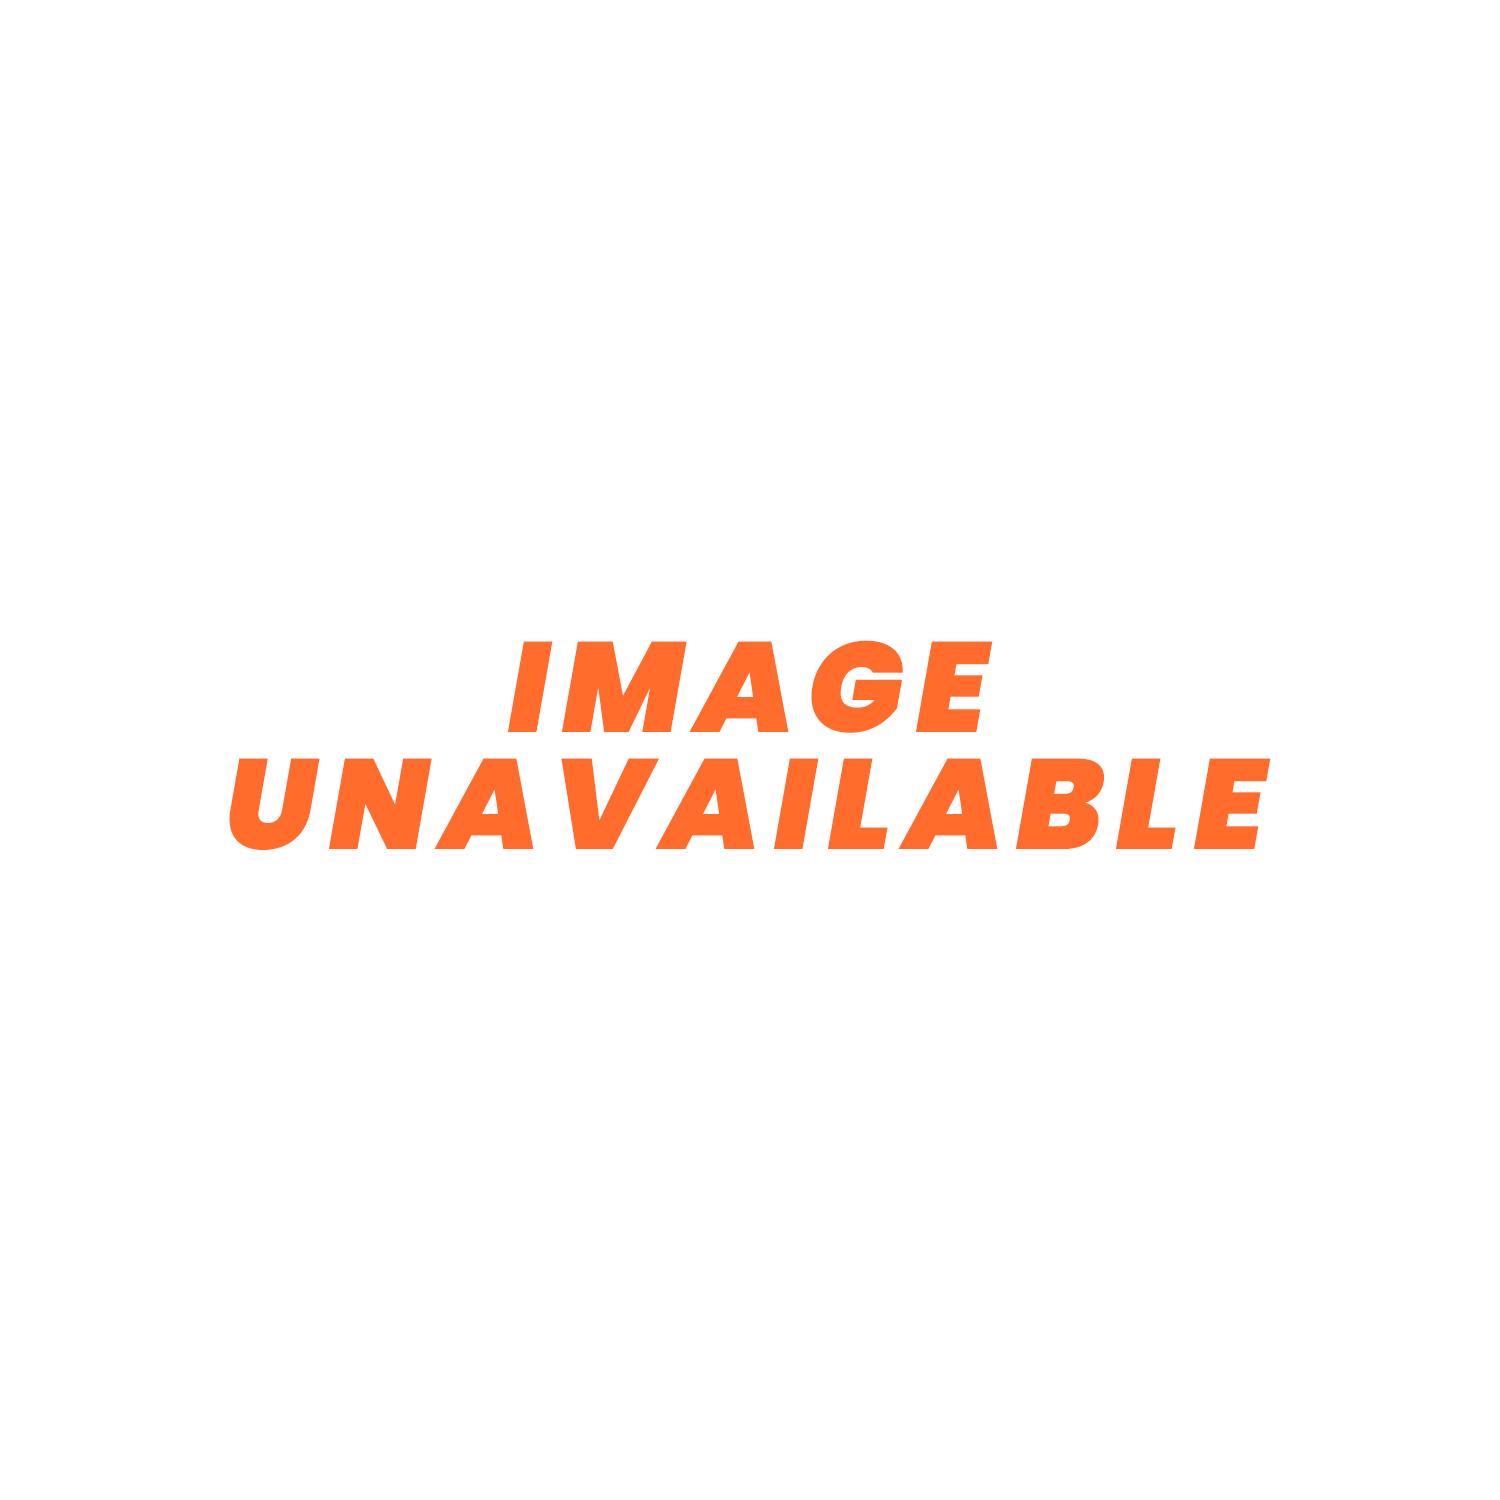 "SPAL Radiator Fan - 12.0"" (305mm) Push VA10-AP50/C-25S 1009cfm"